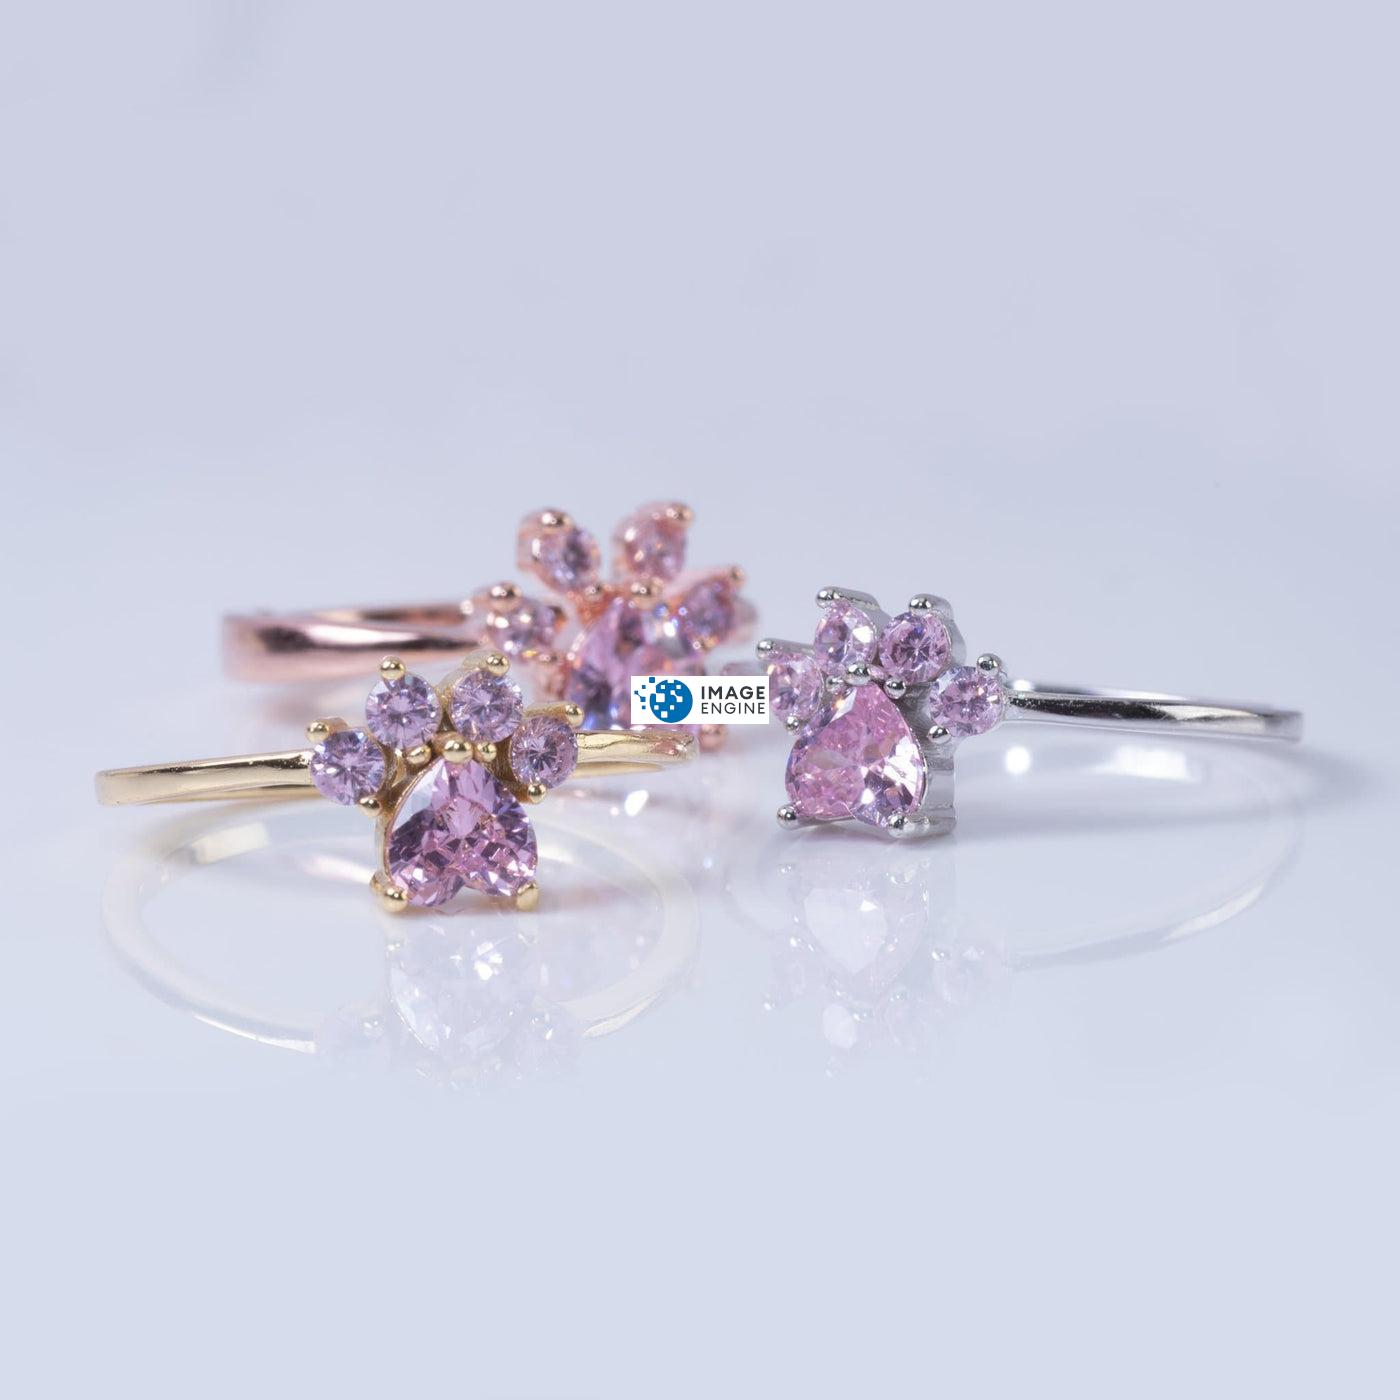 Bella Paw Rose Quartz Ring - Trio staggered w each other